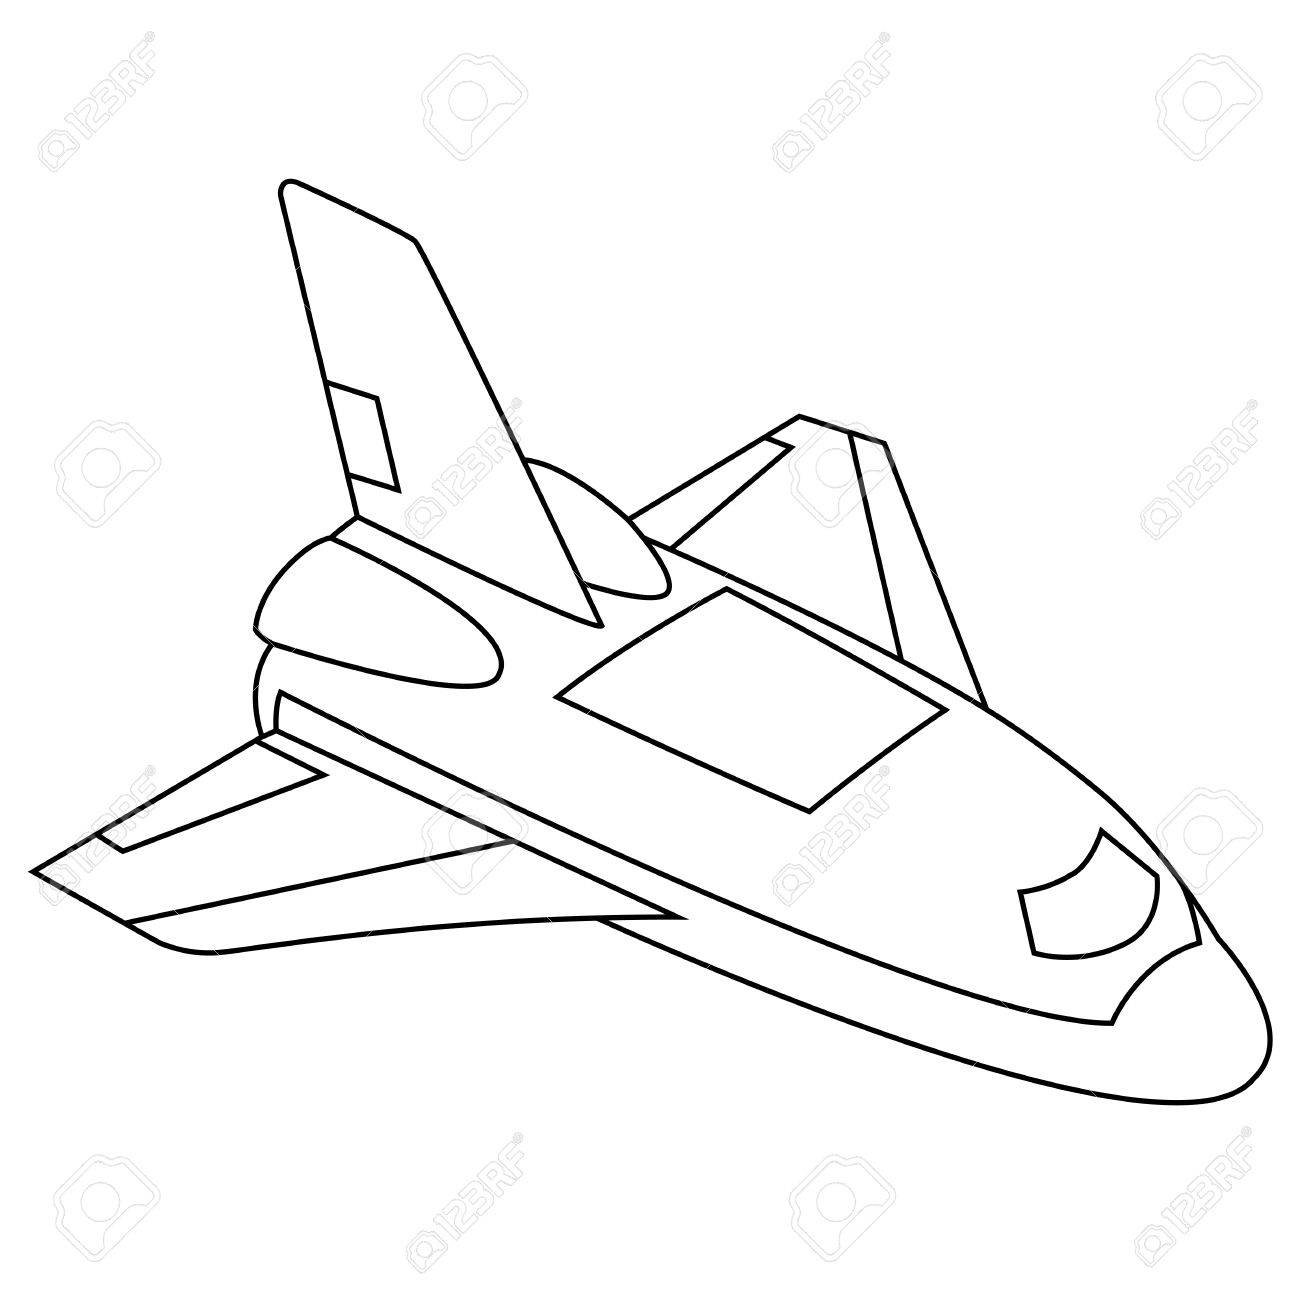 spacecraft drawing at getdrawings com free for personal use